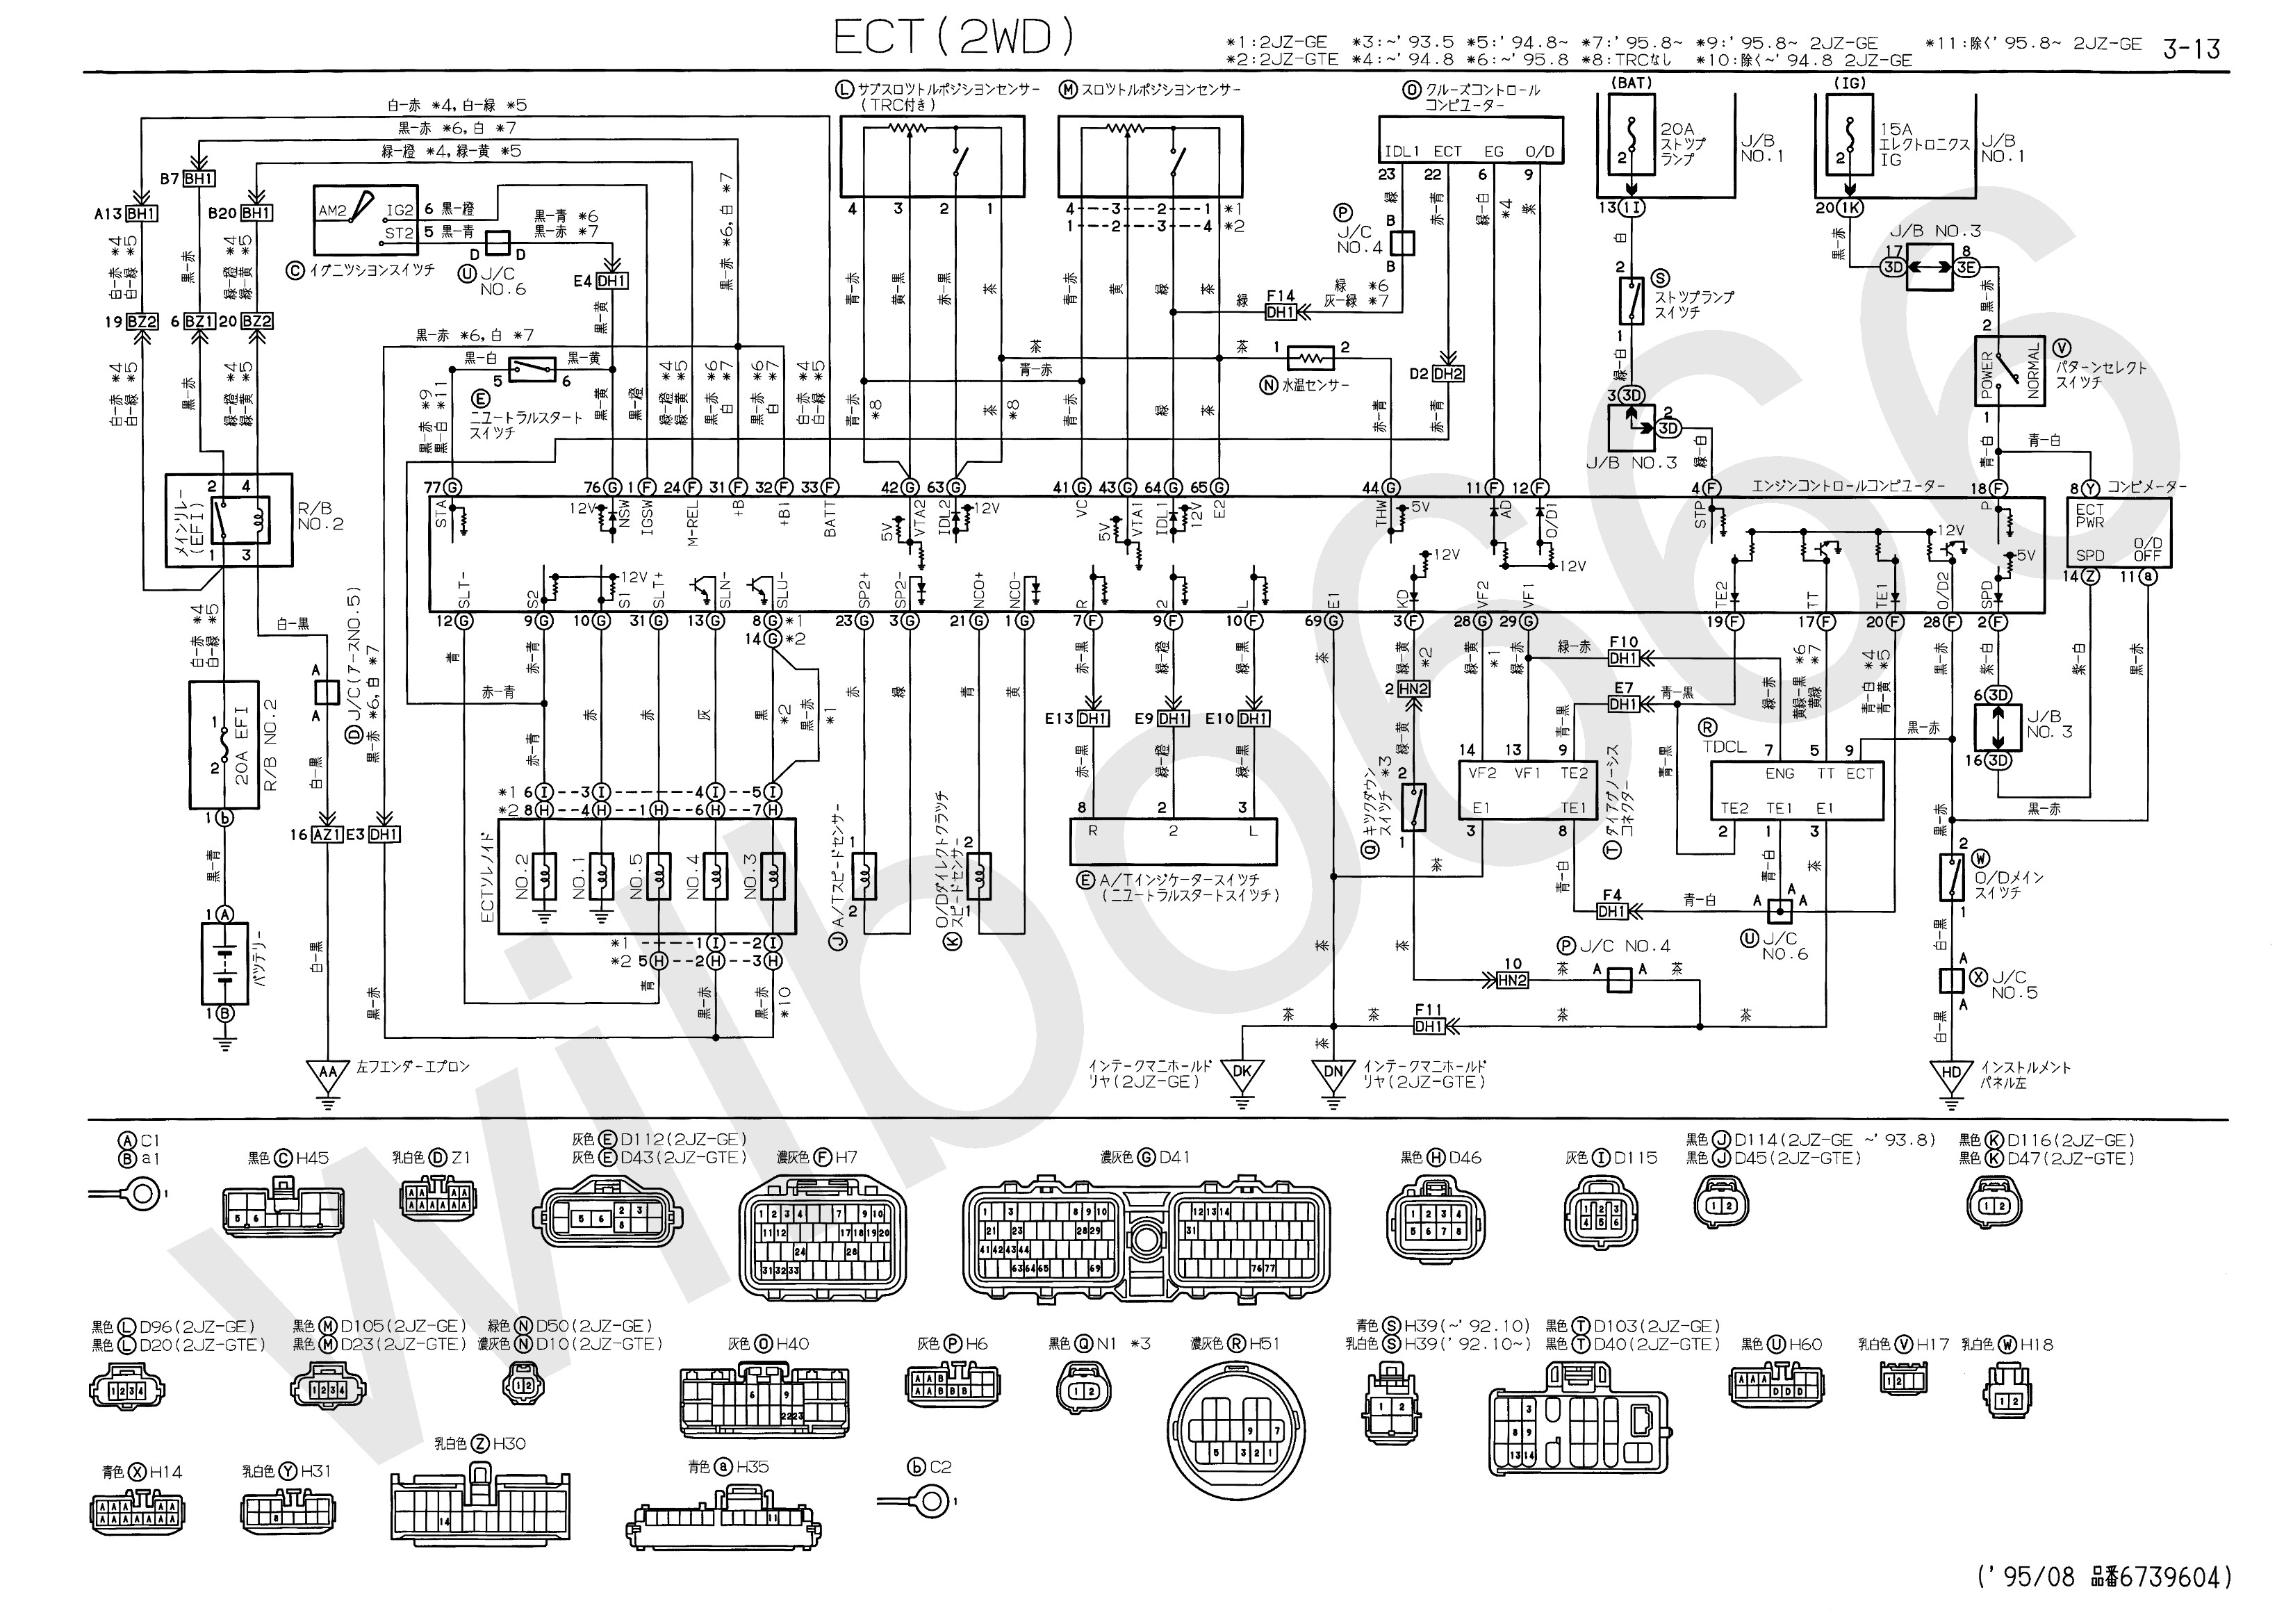 1999 Infiniti I30 Engine Diagram Wilbo666 2jz Gte Jzs147 Aristo Engine  Wiring Outstanding toyota Of 1999